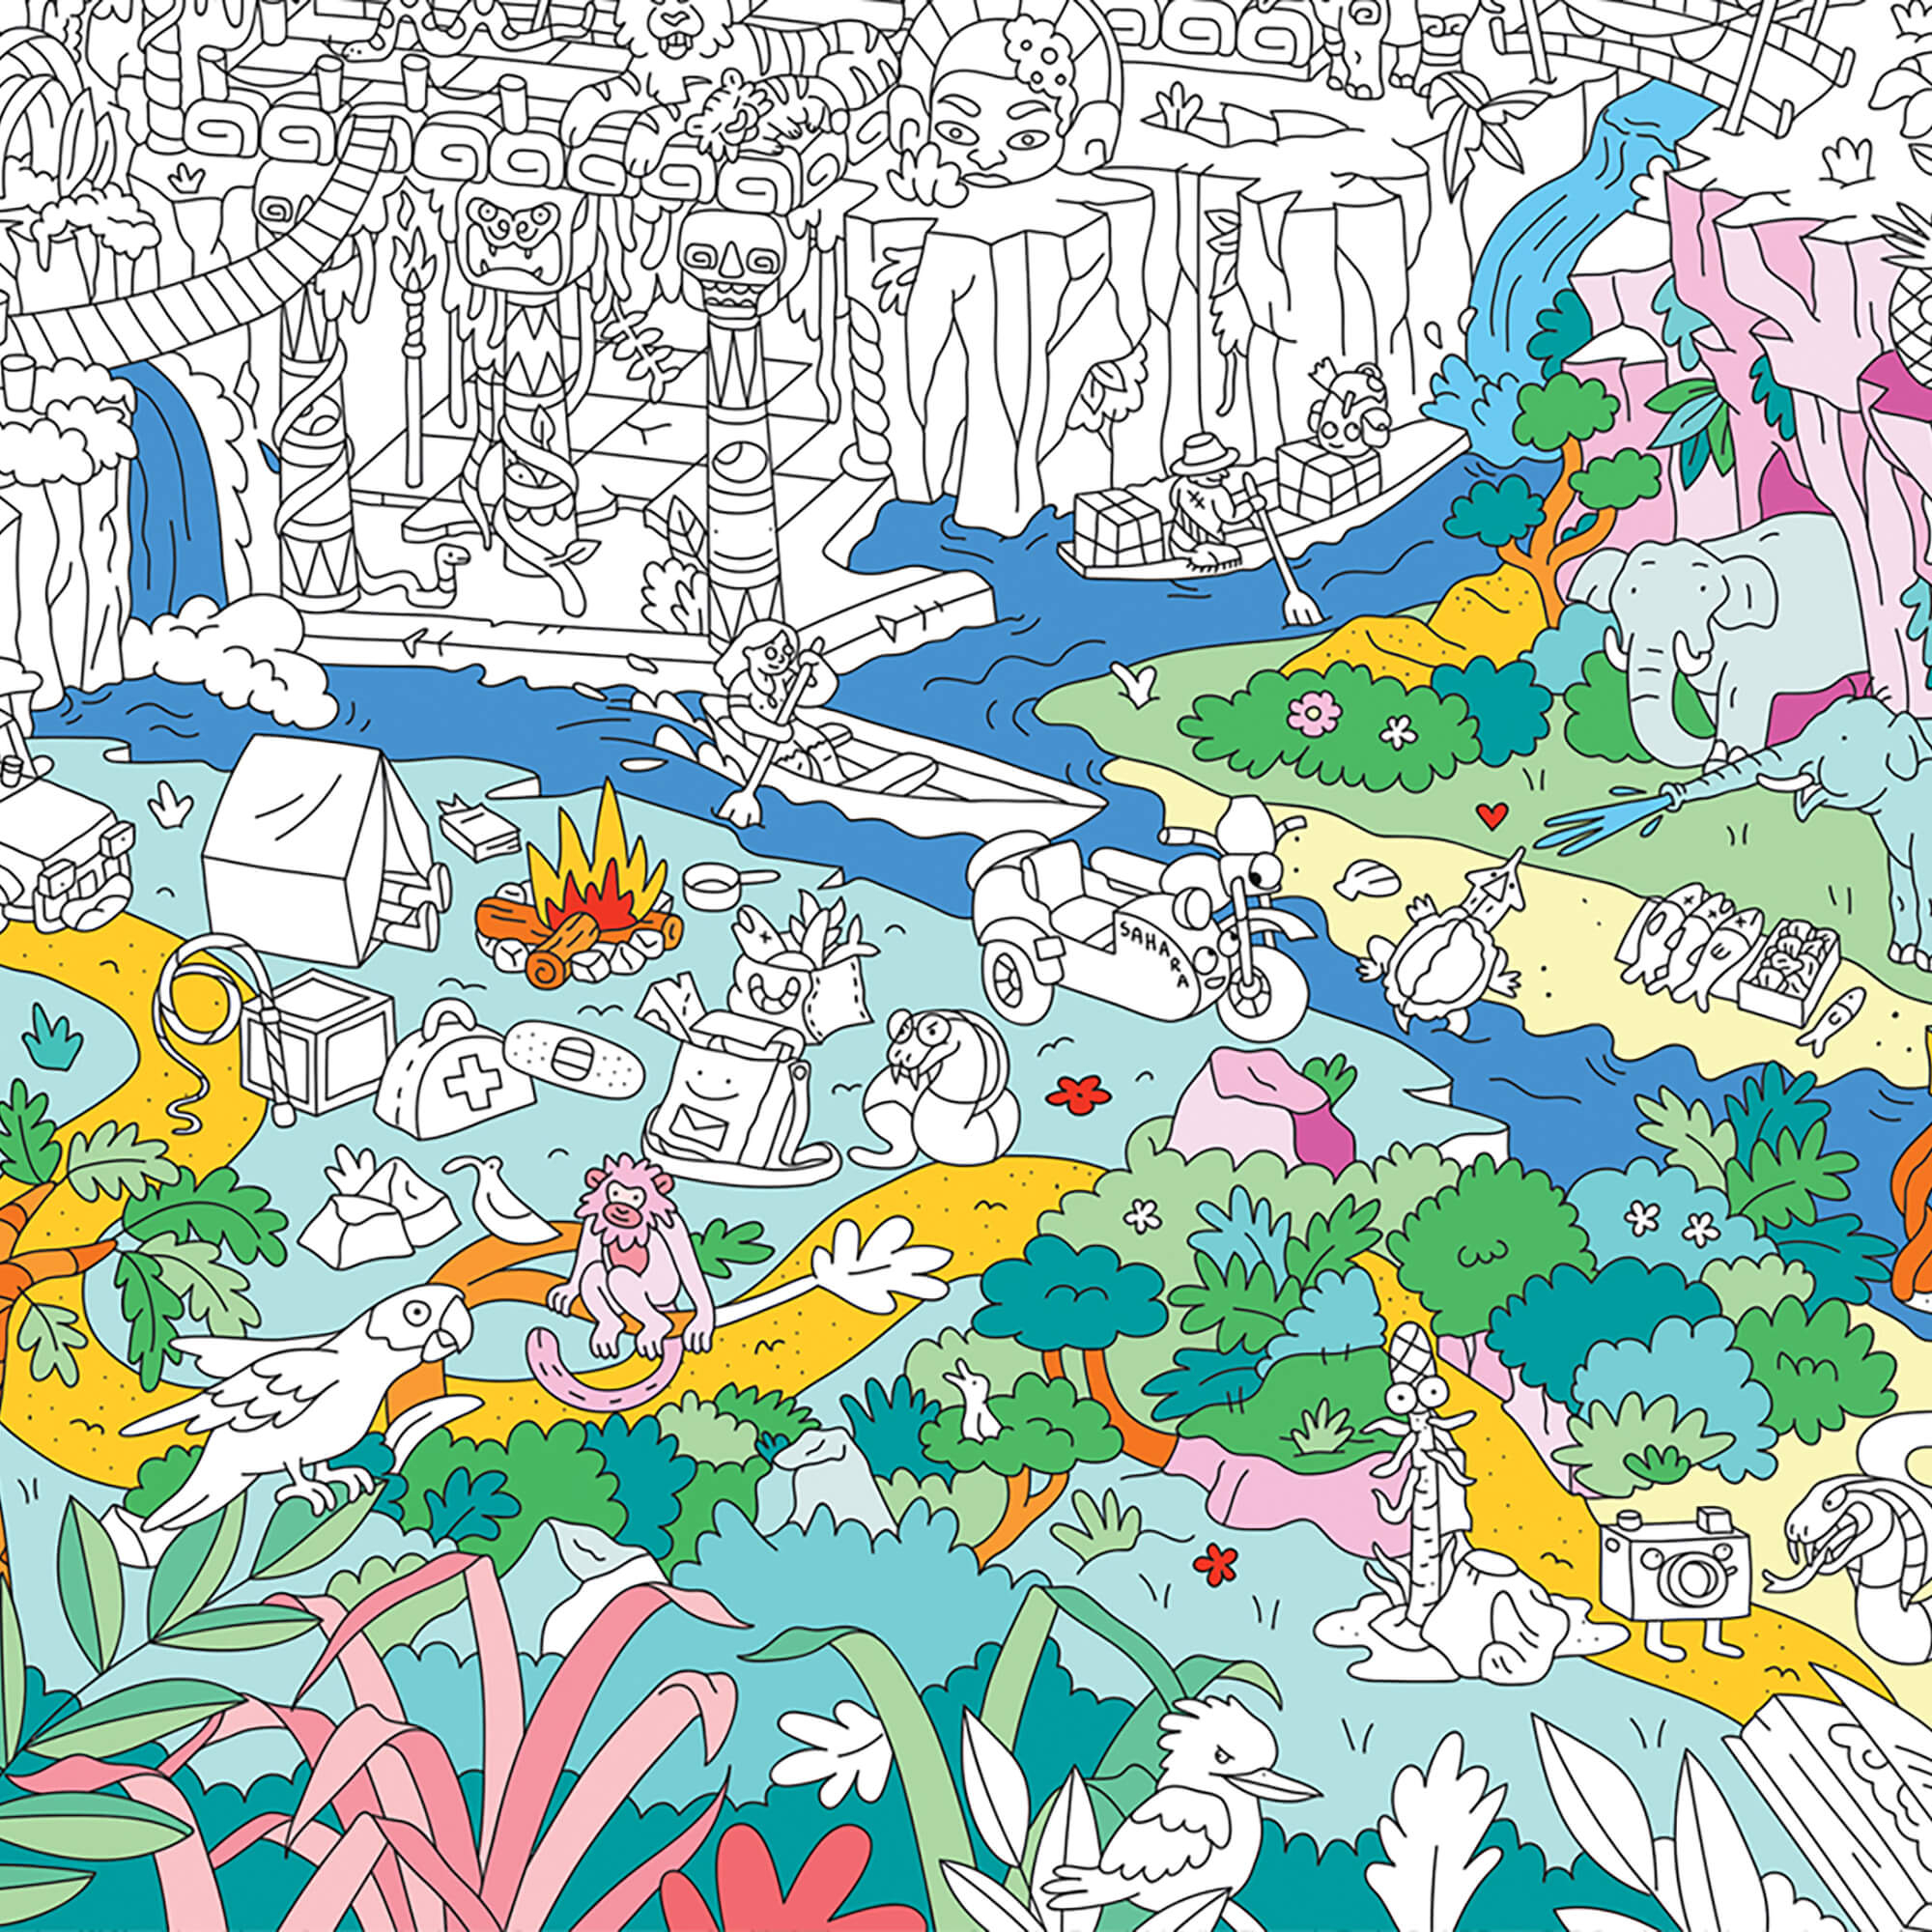 Poster Géant À Colorier Jungle By Omy - La Collection intérieur Omy Coloriage Geant